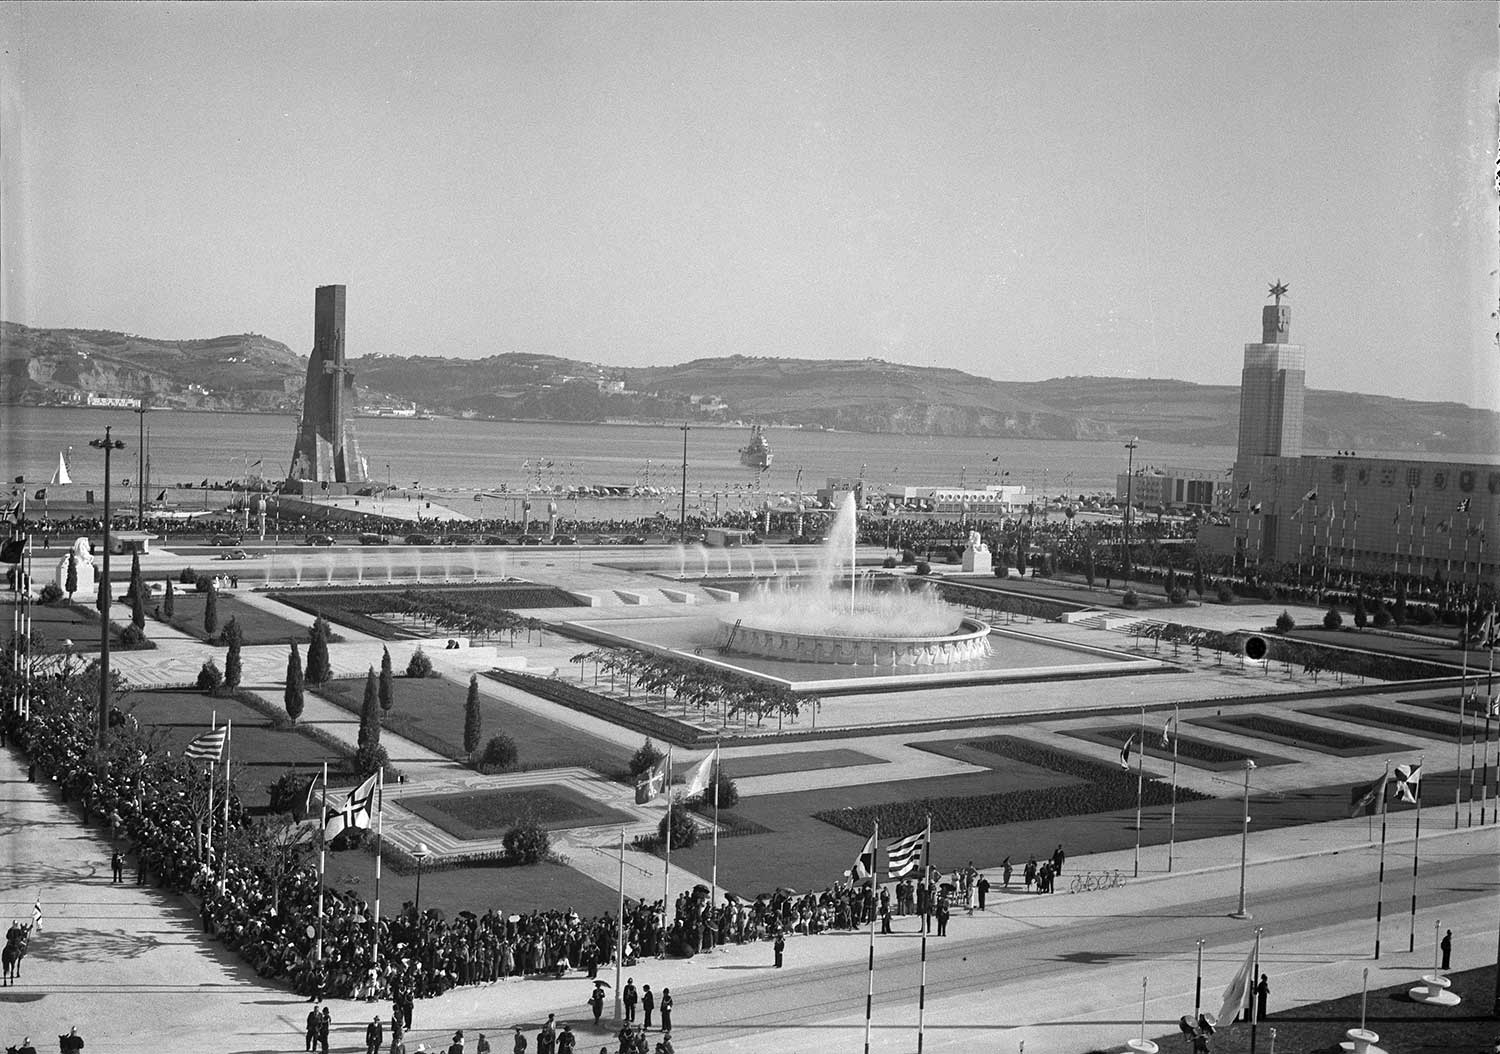 1940 EXPOSITION OF THE PORTUGUESE-SPEAKING WORLD  Photo: Studio Mário Novais, 1940, Lisbon  Biblioteca de Arte da Fundação Calouste Gulbenkian [CFT164_01196]